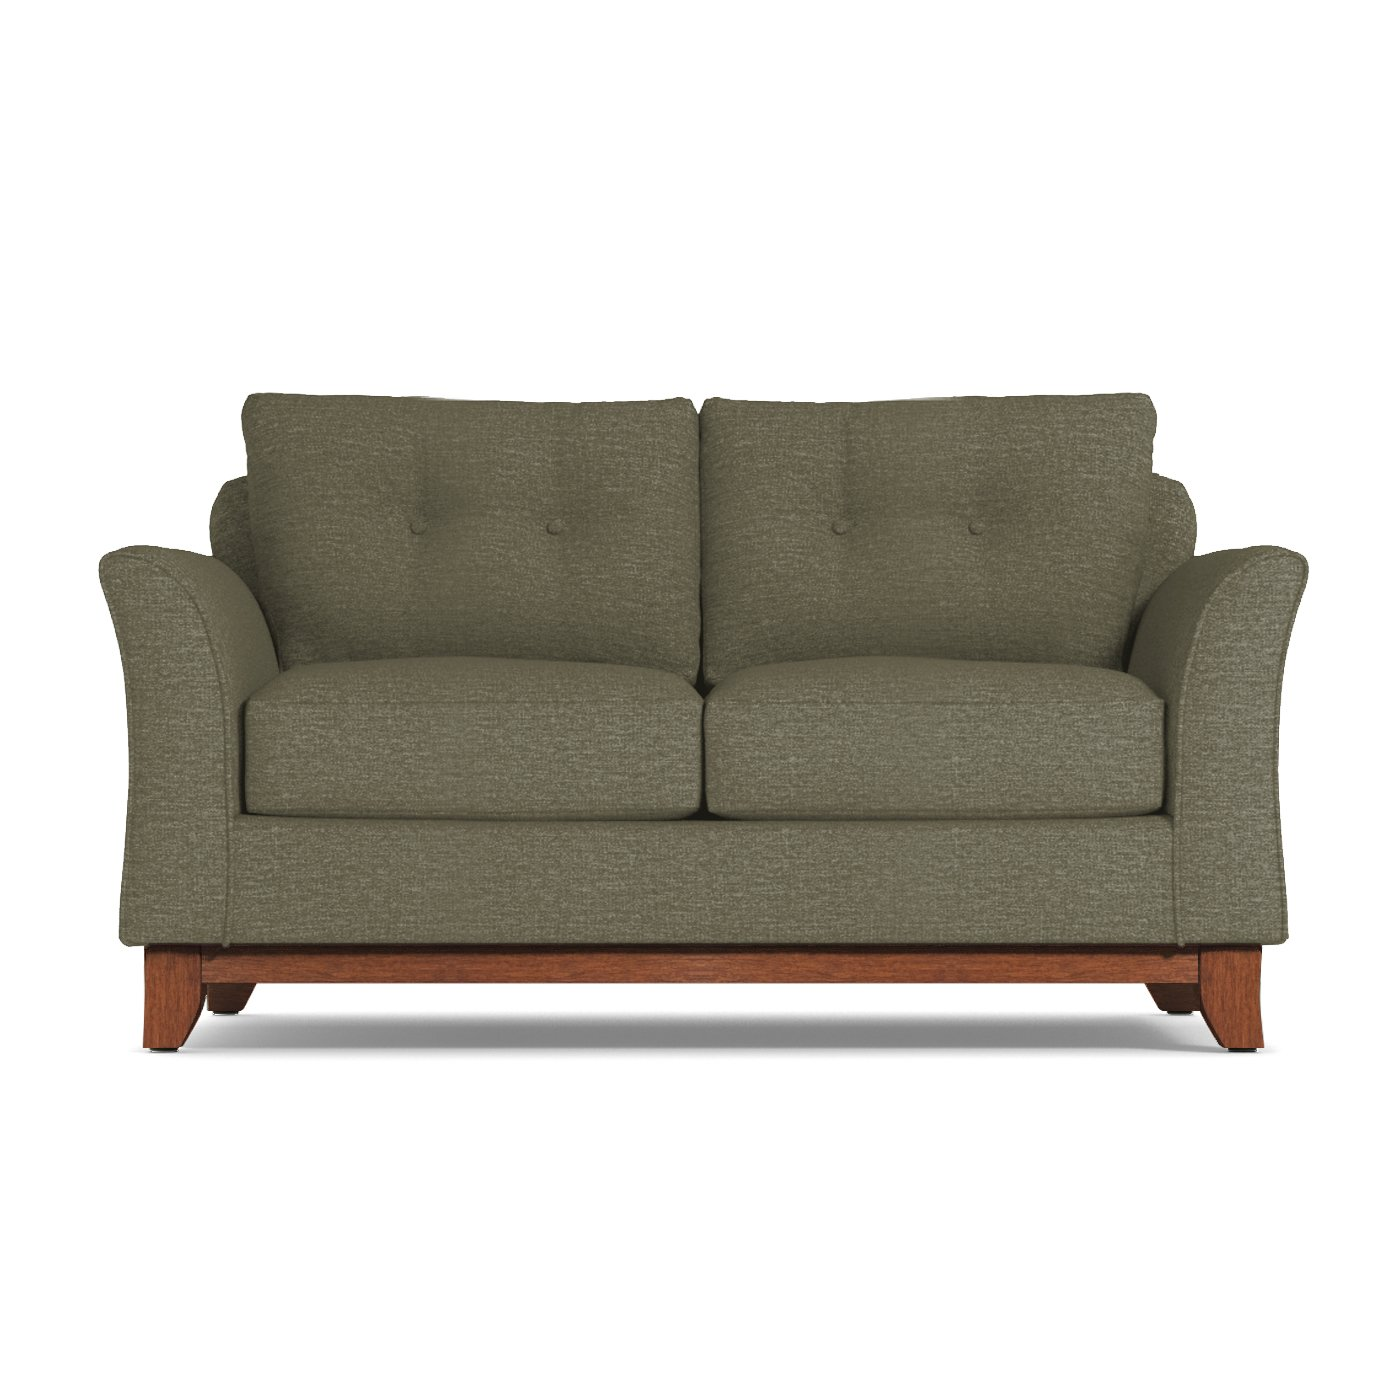 Attractive Marco Apartment Size Sleeper Sofa